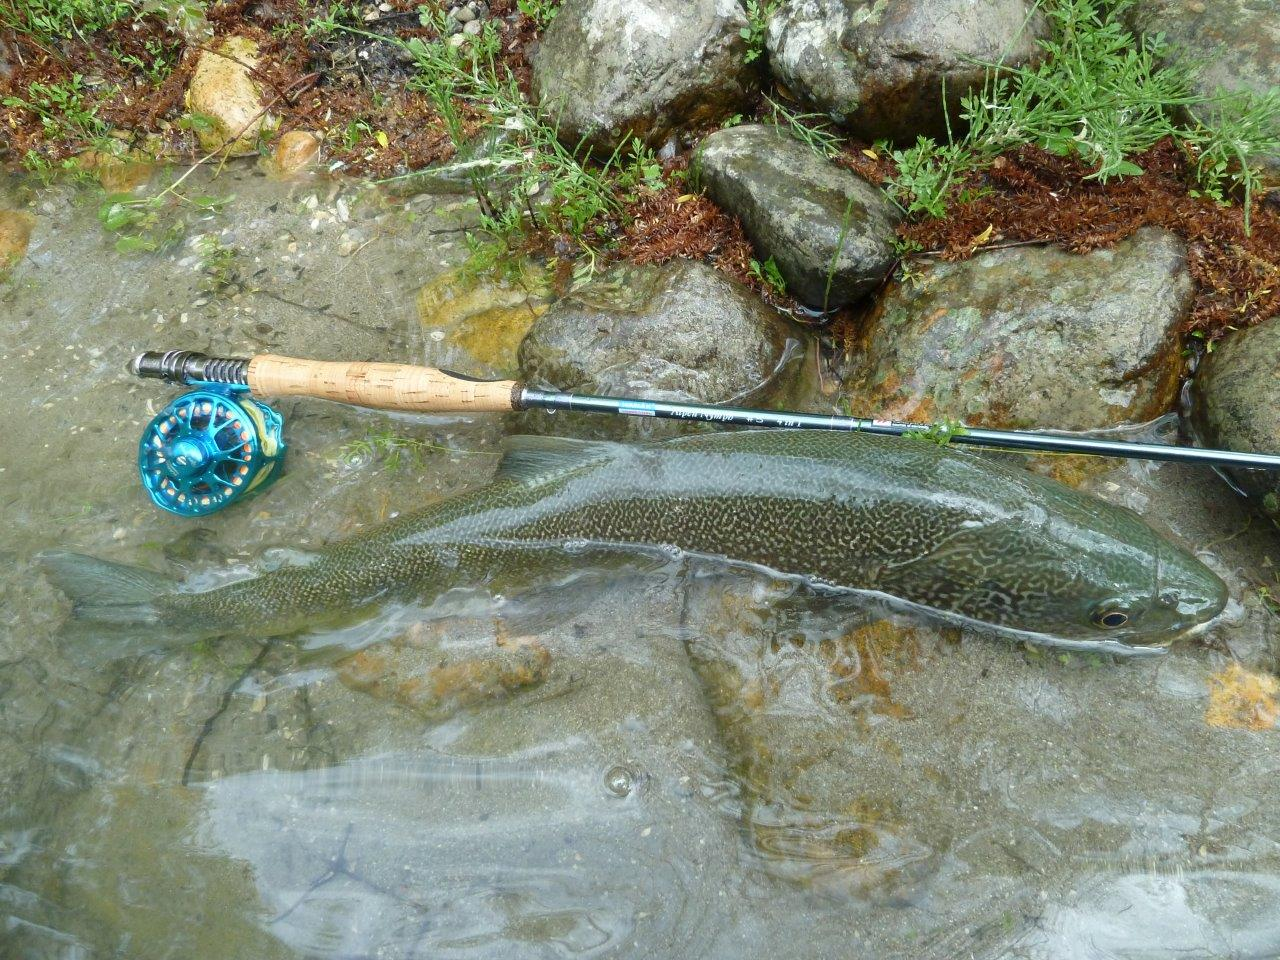 Fly Rod Alpen Nymph 4 in 1 - pictures from testing